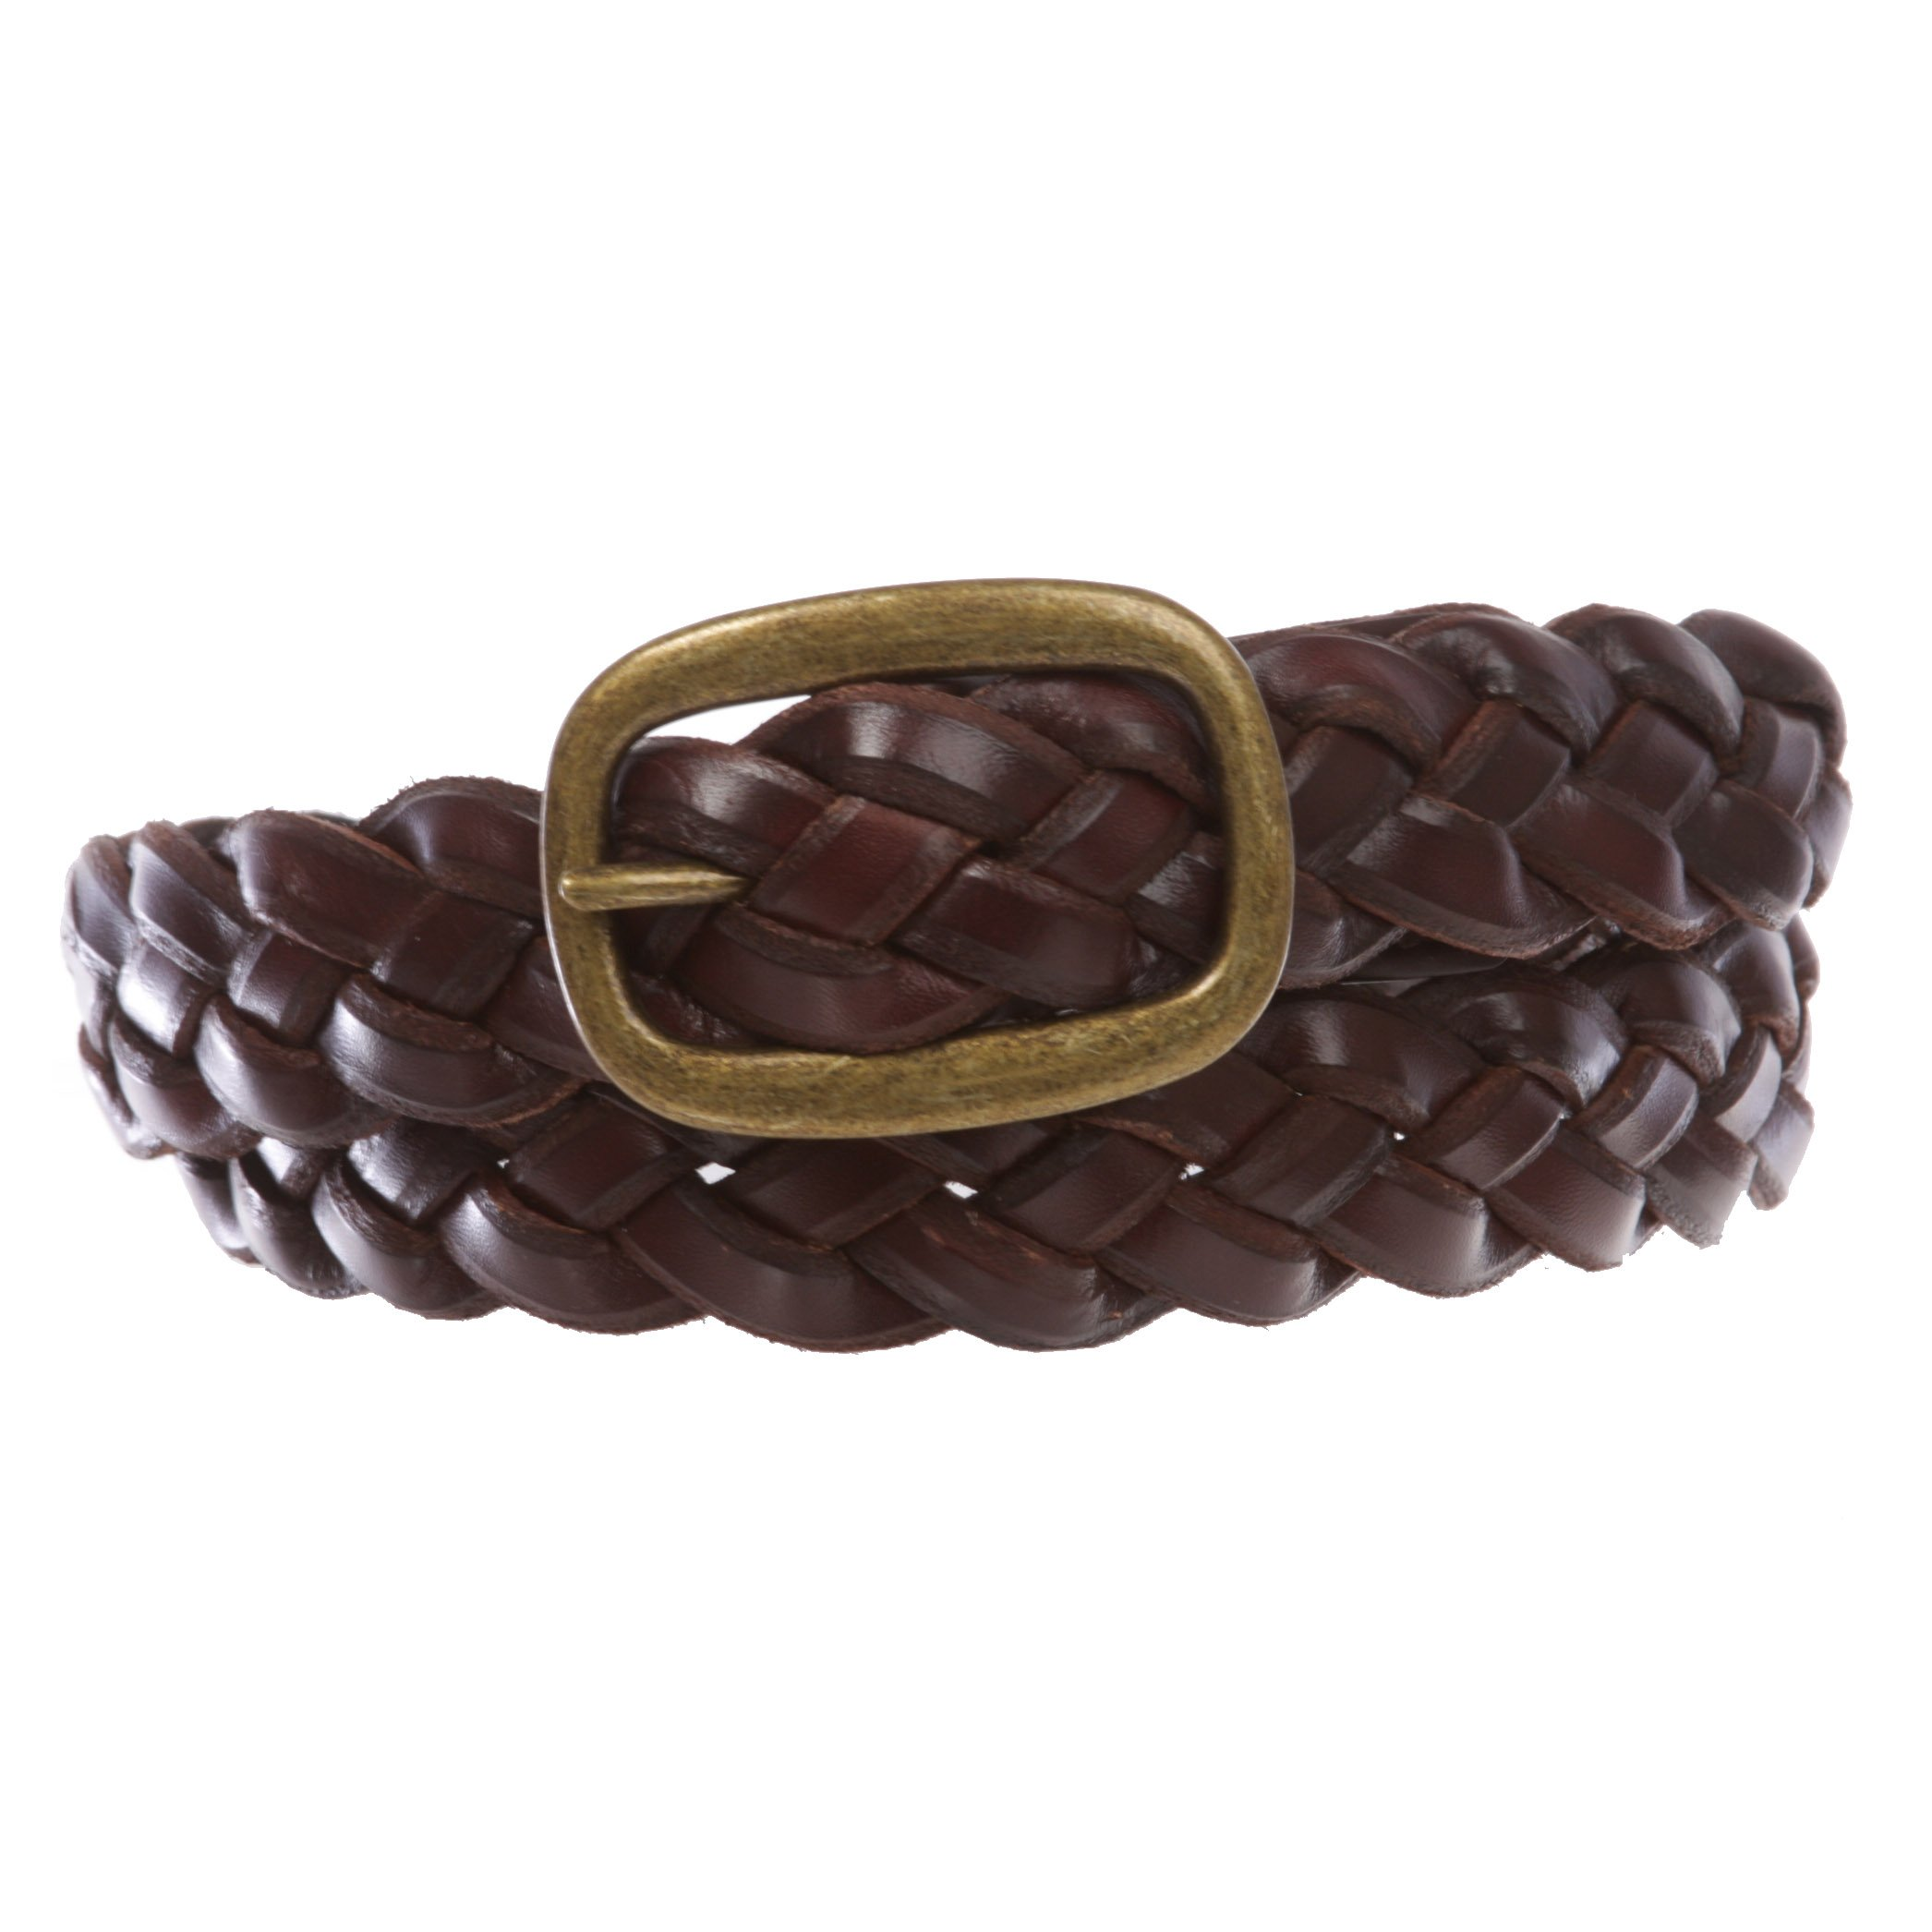 Women's 1 1/4'' Braided Woven Cowhide Top Full Grain Solid Two-Tone 3D Style Vintage Leather Belt, Brown | M/L-36''